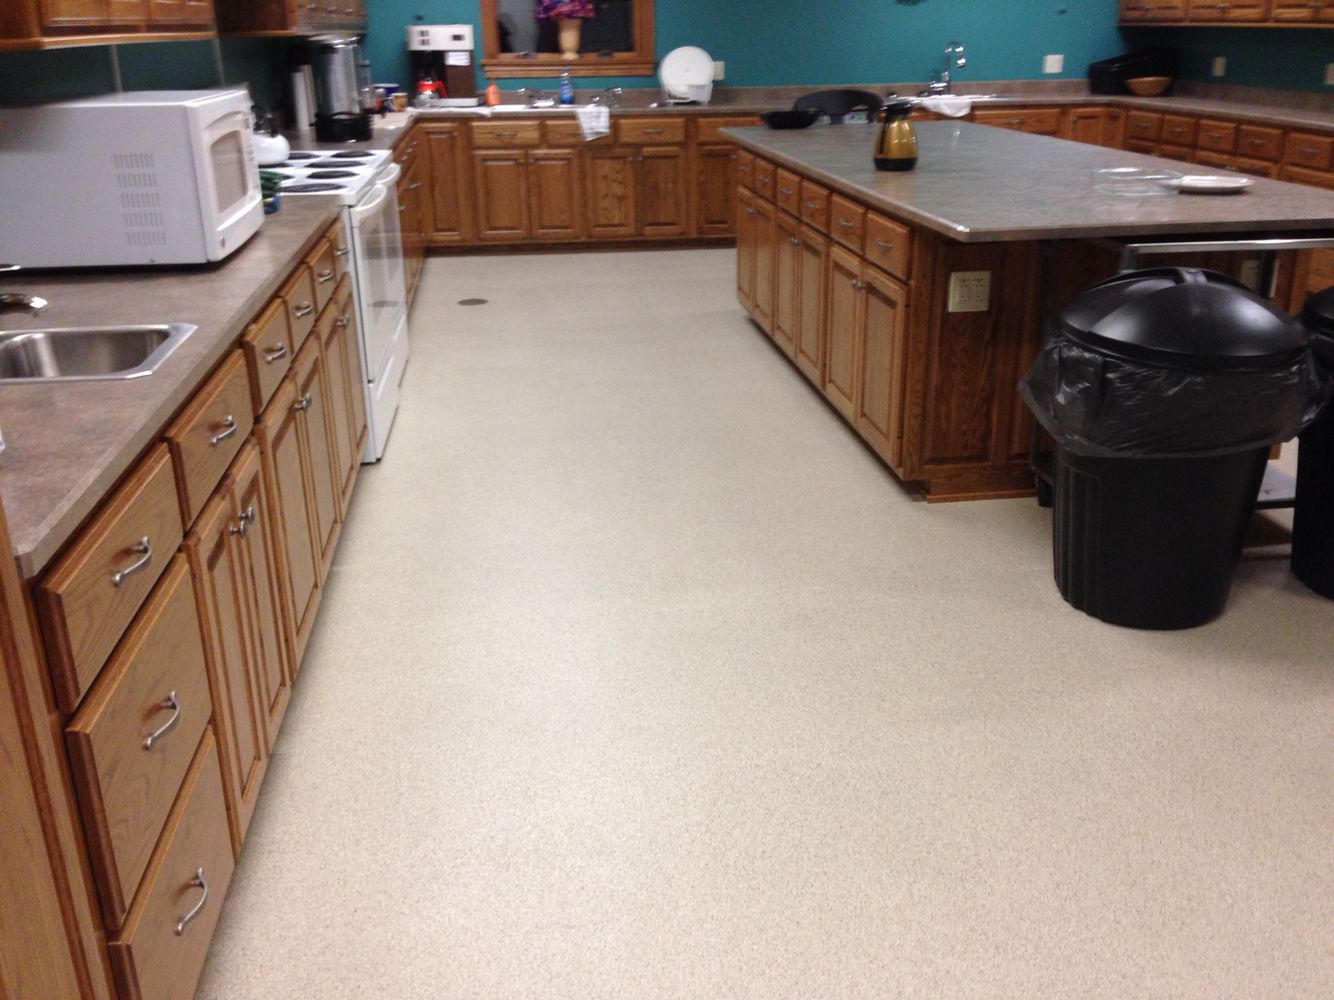 Epoxy Chip Kitchen Floor Installed By Re Deck Of Northwest Ohio